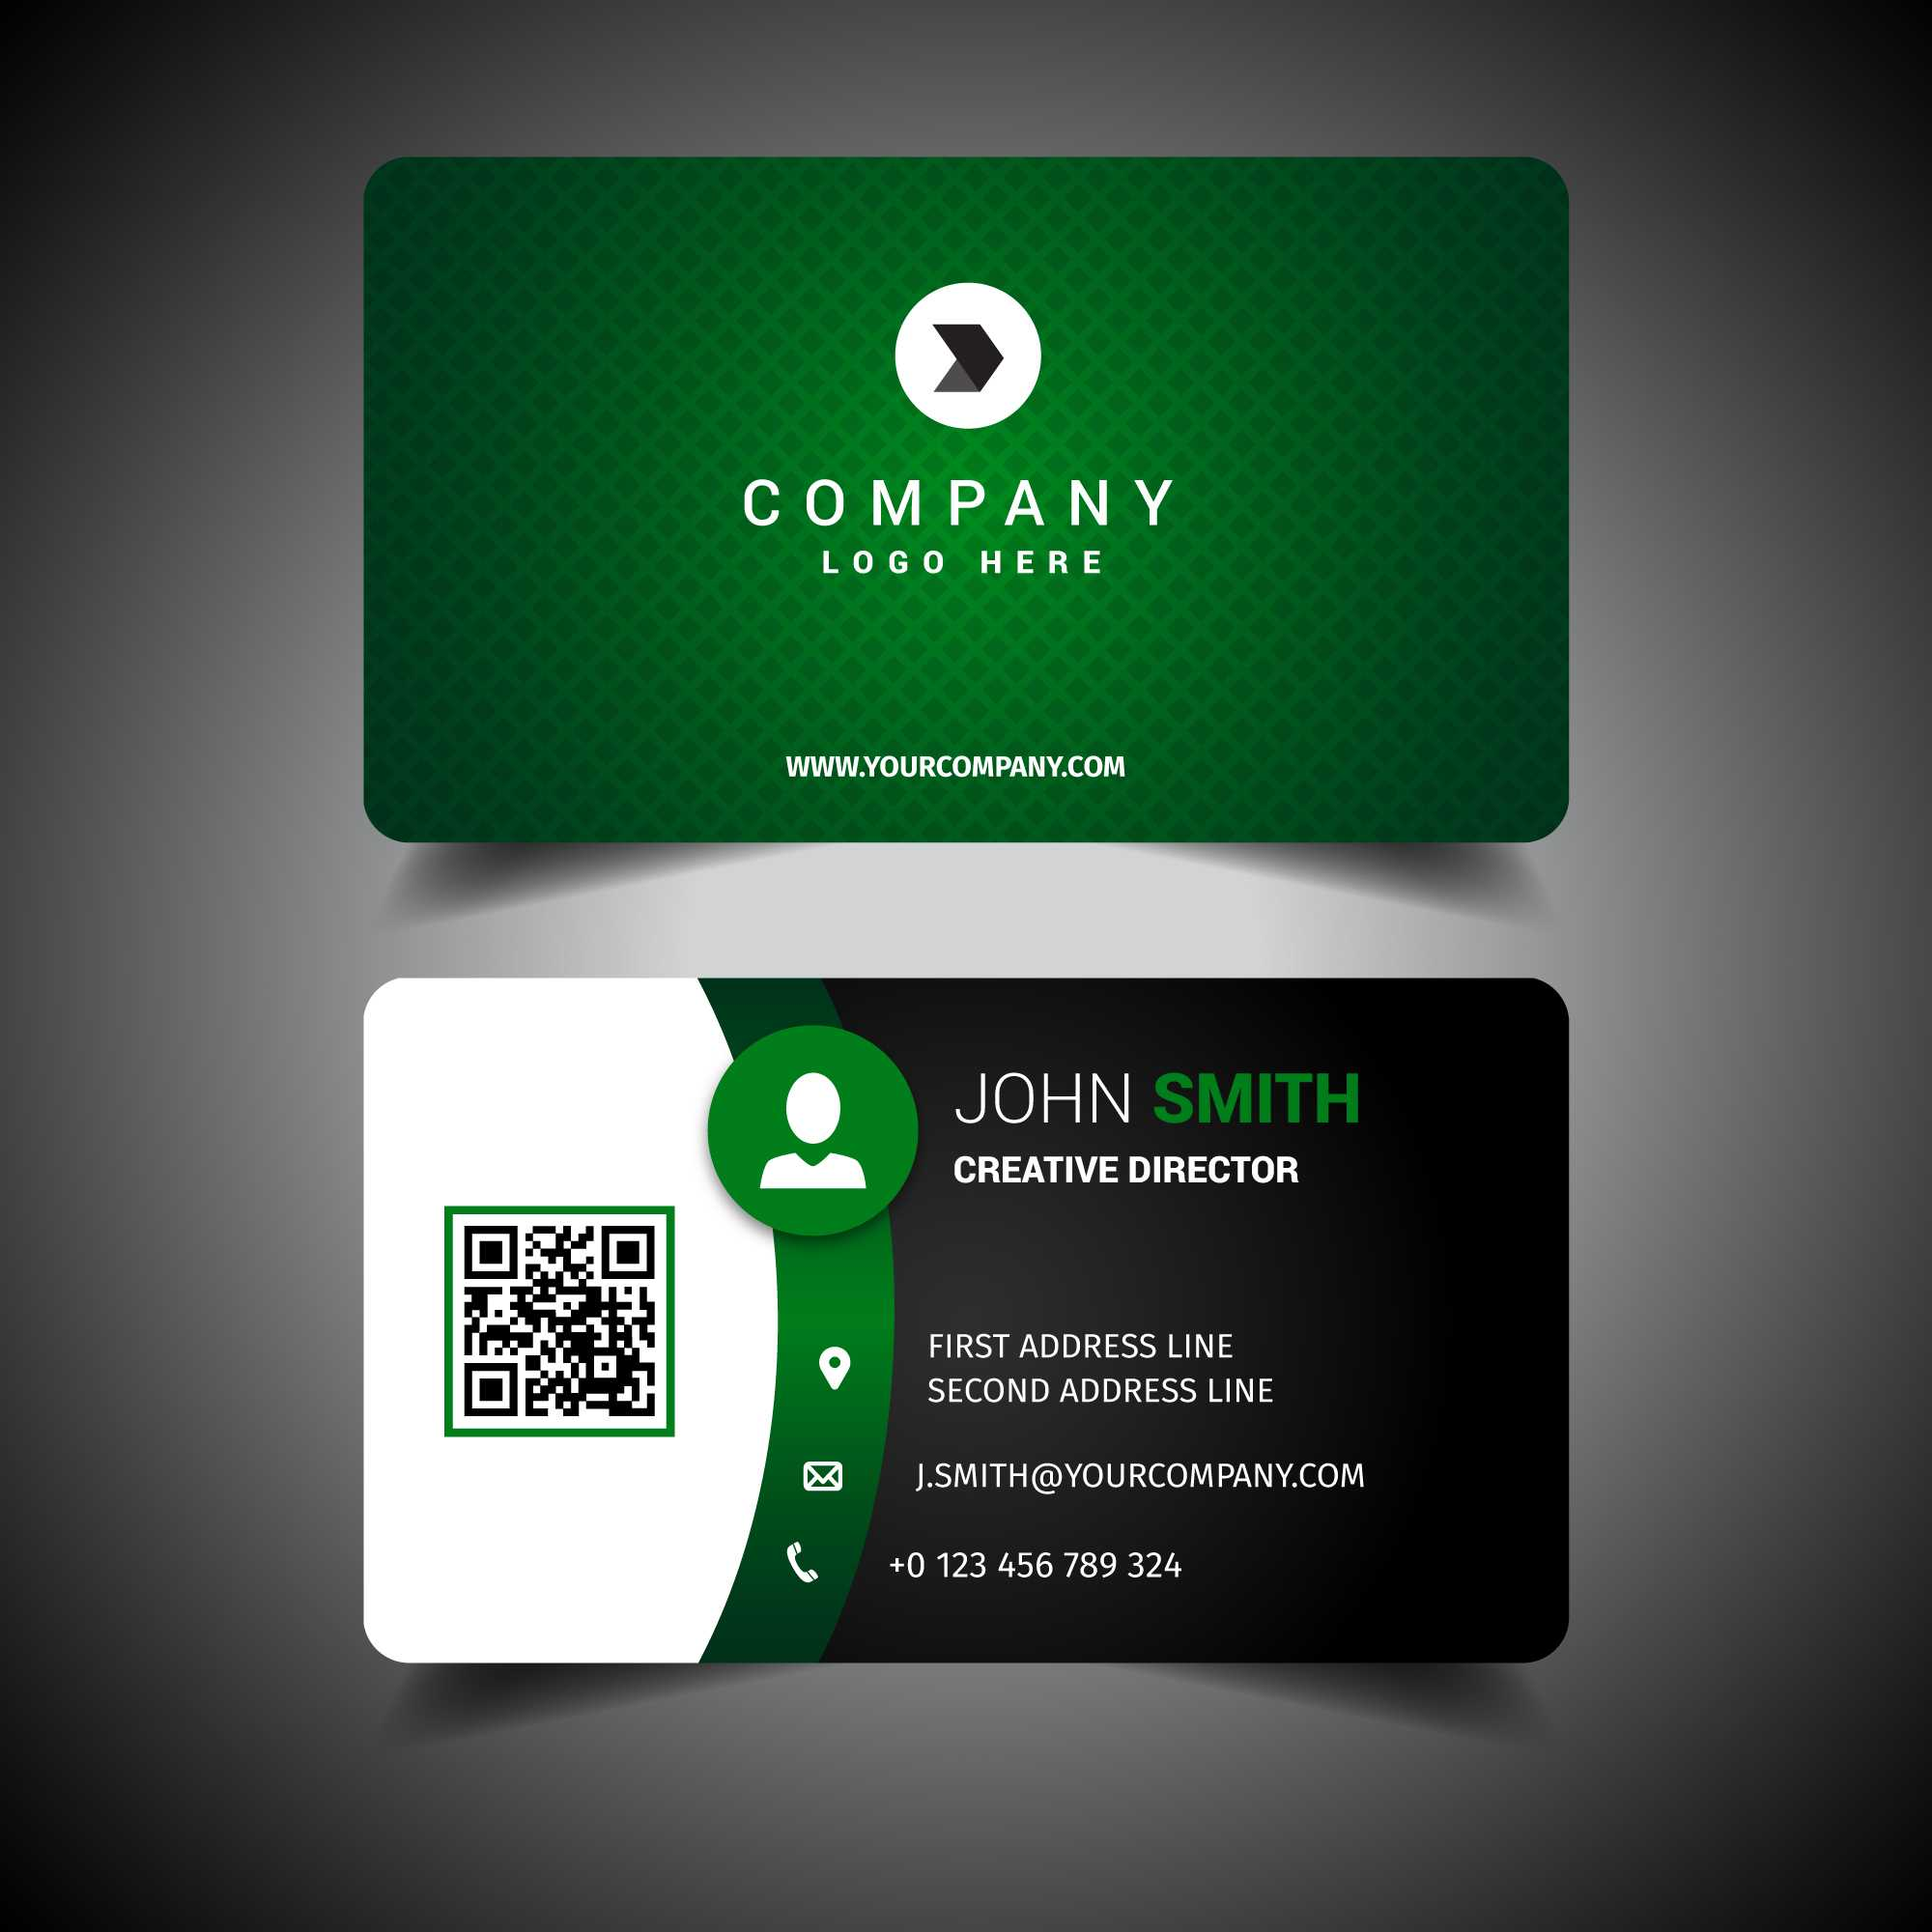 Green Business Card Free Vector Art - (2,214 Free Downloads) With Regard To Calling Card Free Template